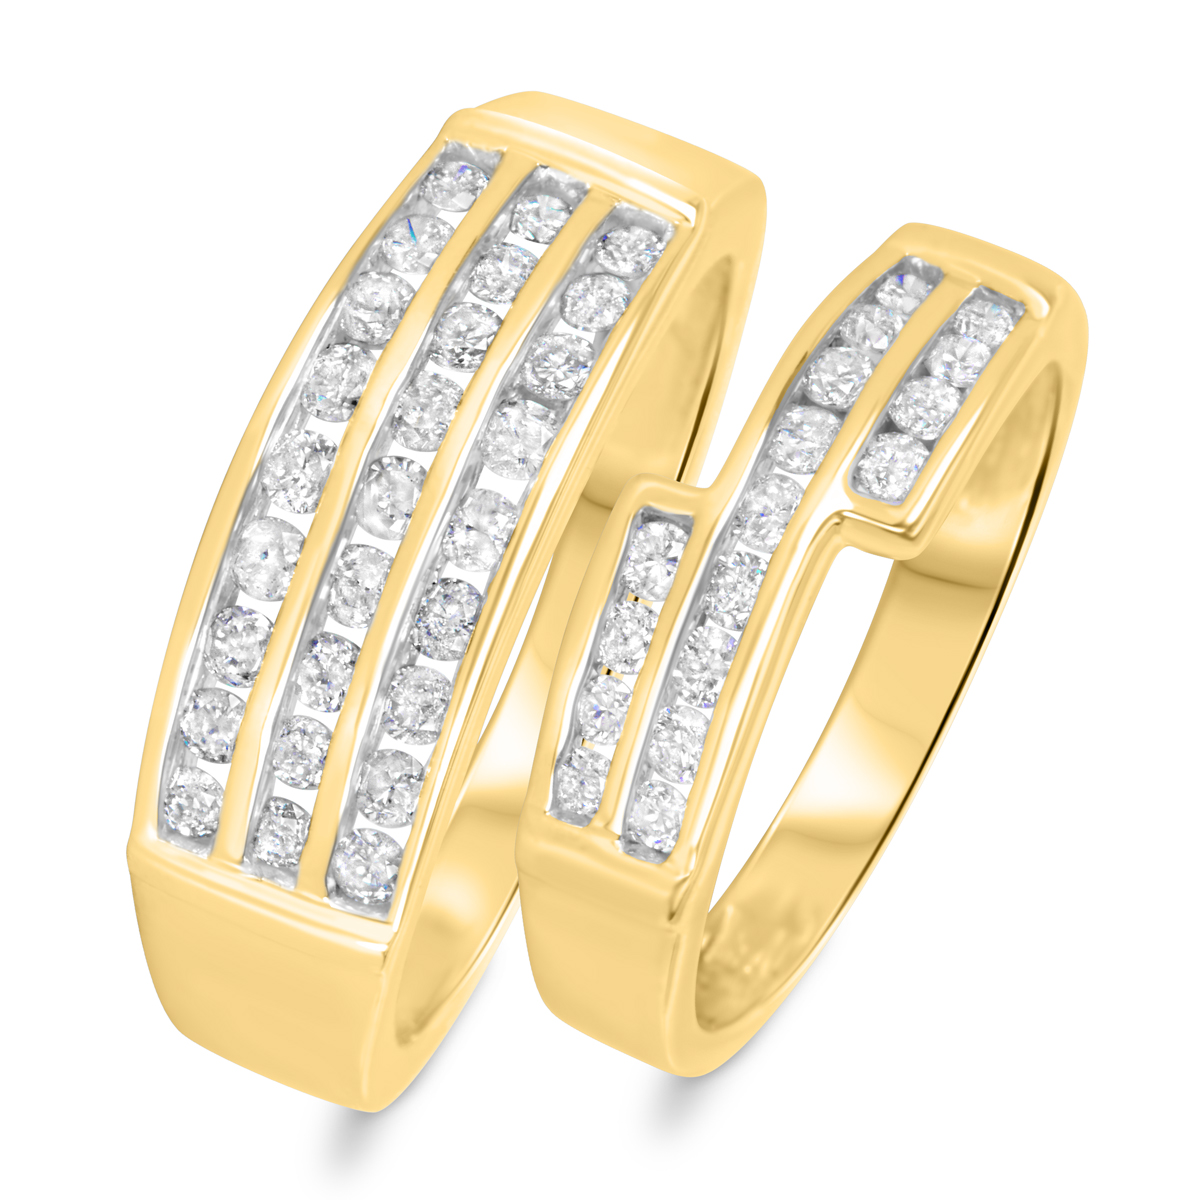 1 1/8 CT. T.W. Round Cut Diamond His And Hers Wedding Band Set 14K Yellow Gold-